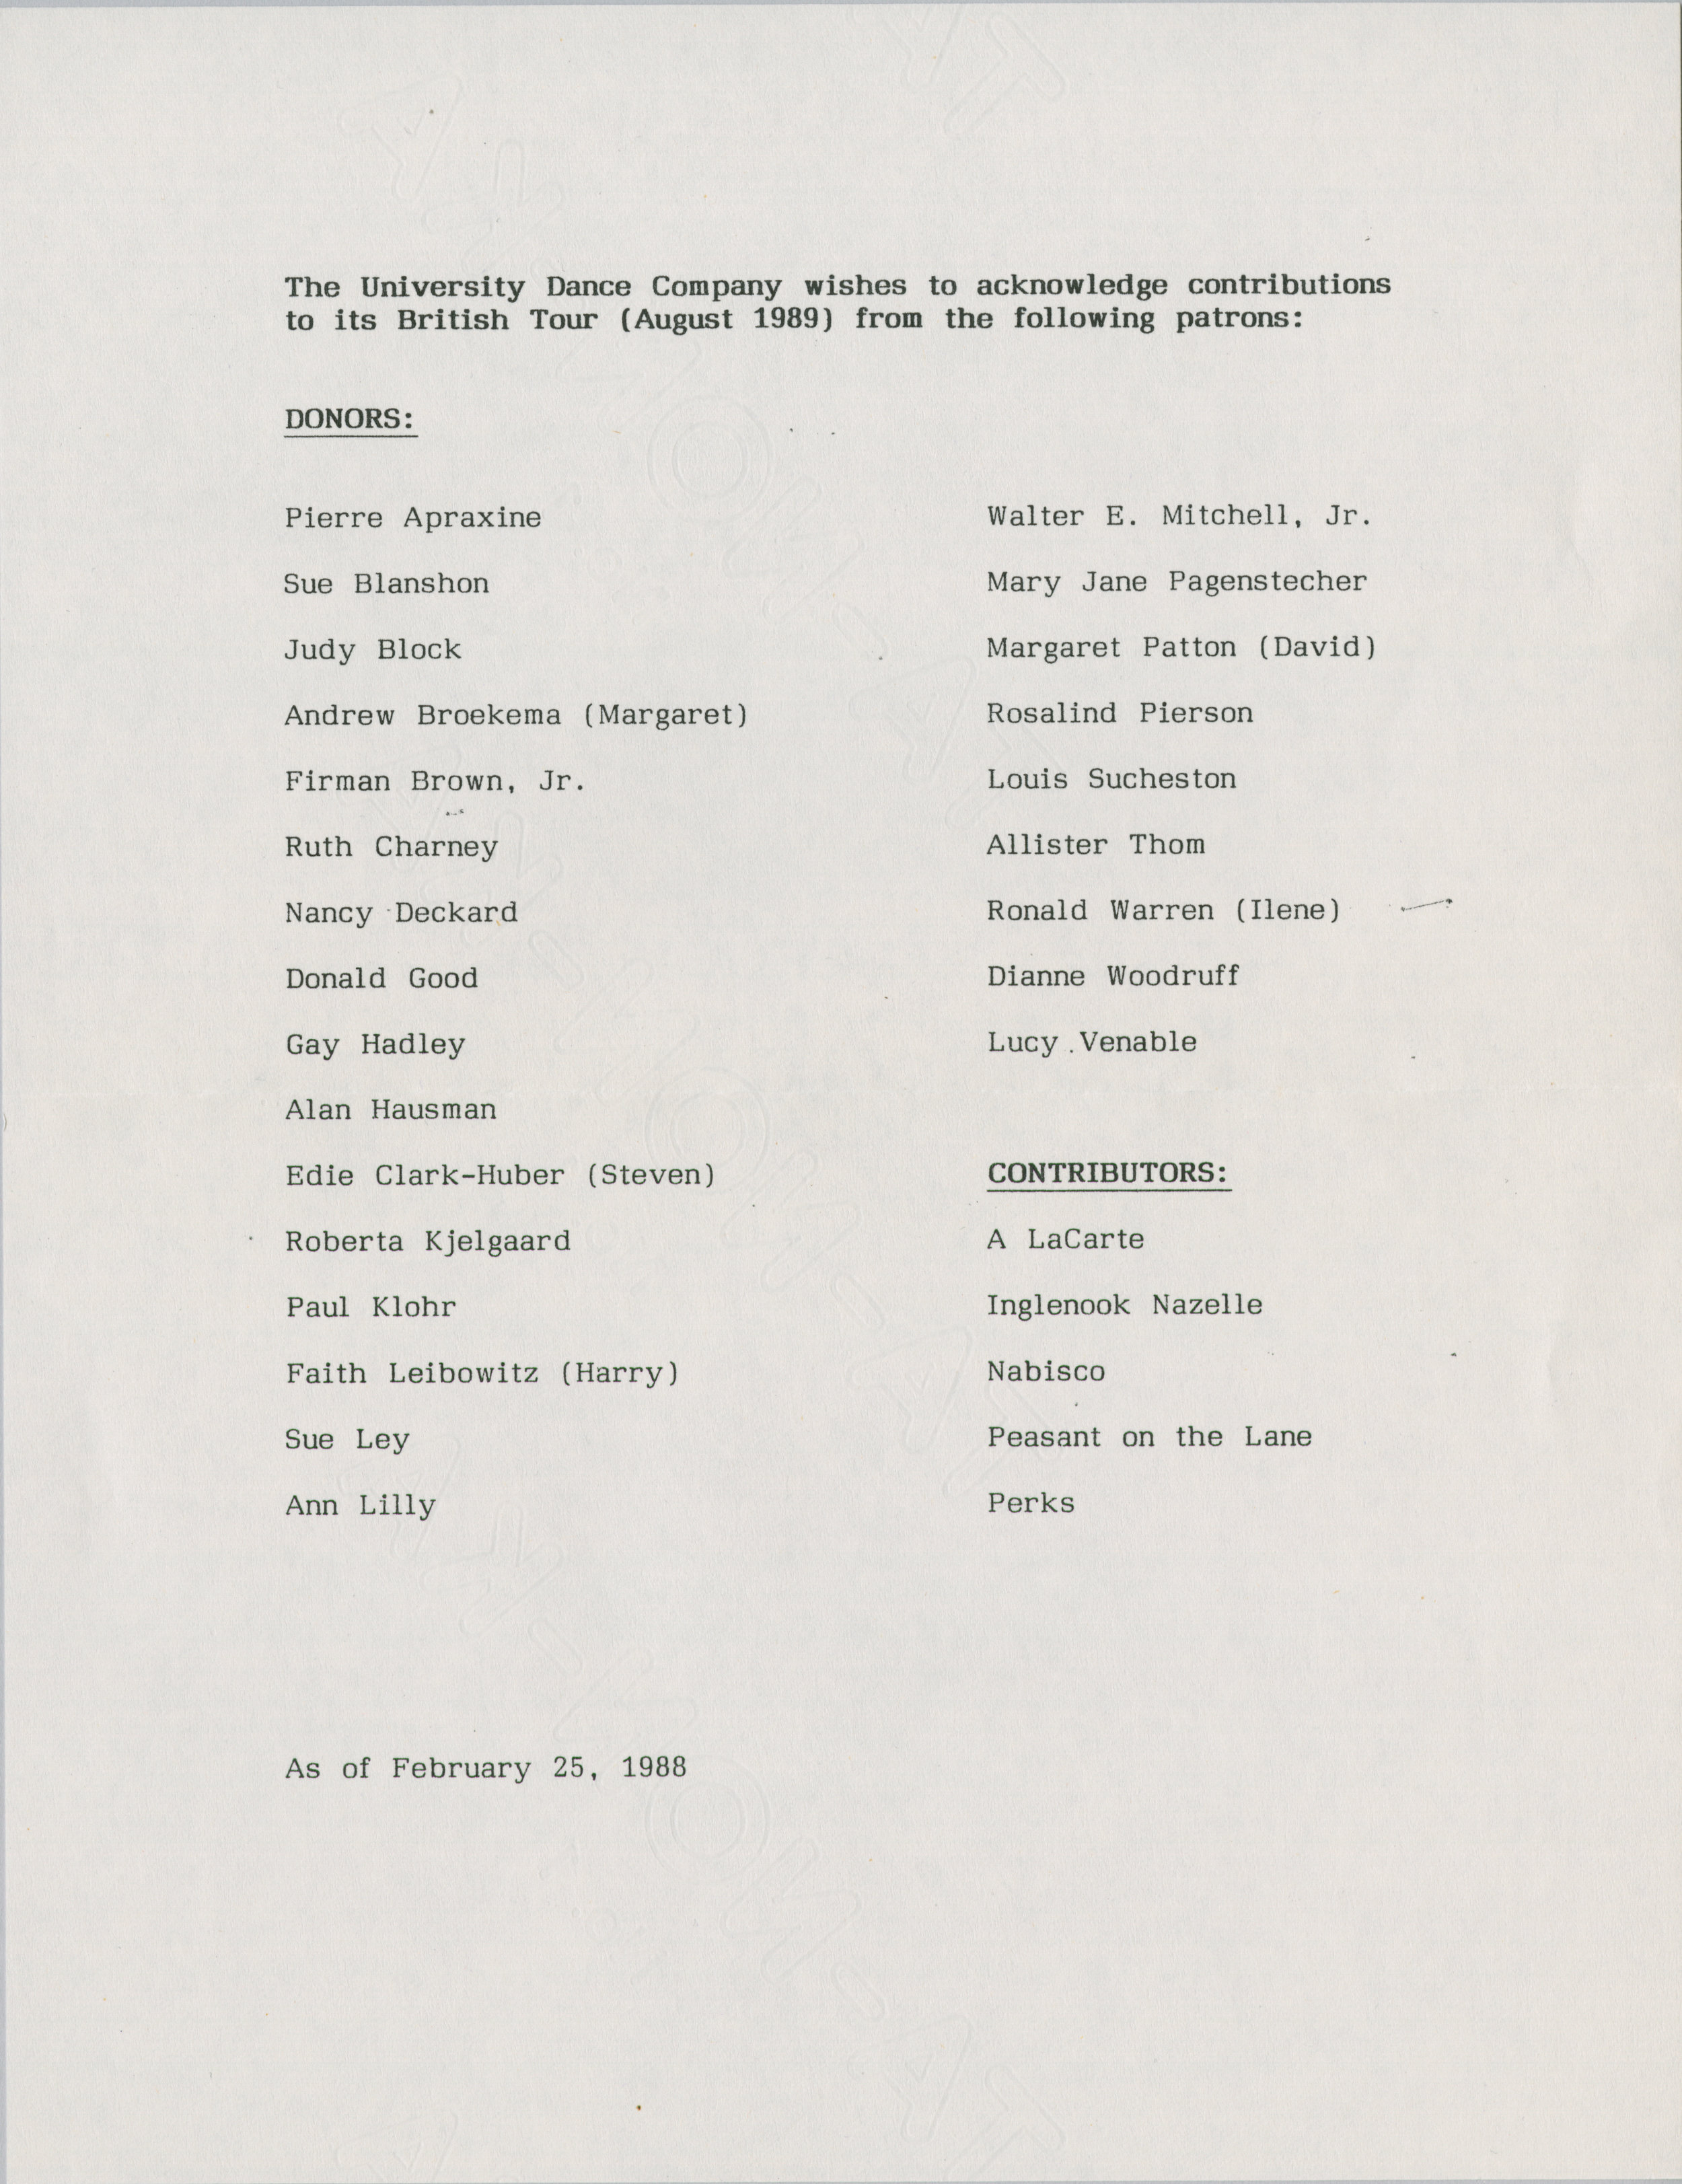 UDC_1988_DancePrograms-004-06.jpg